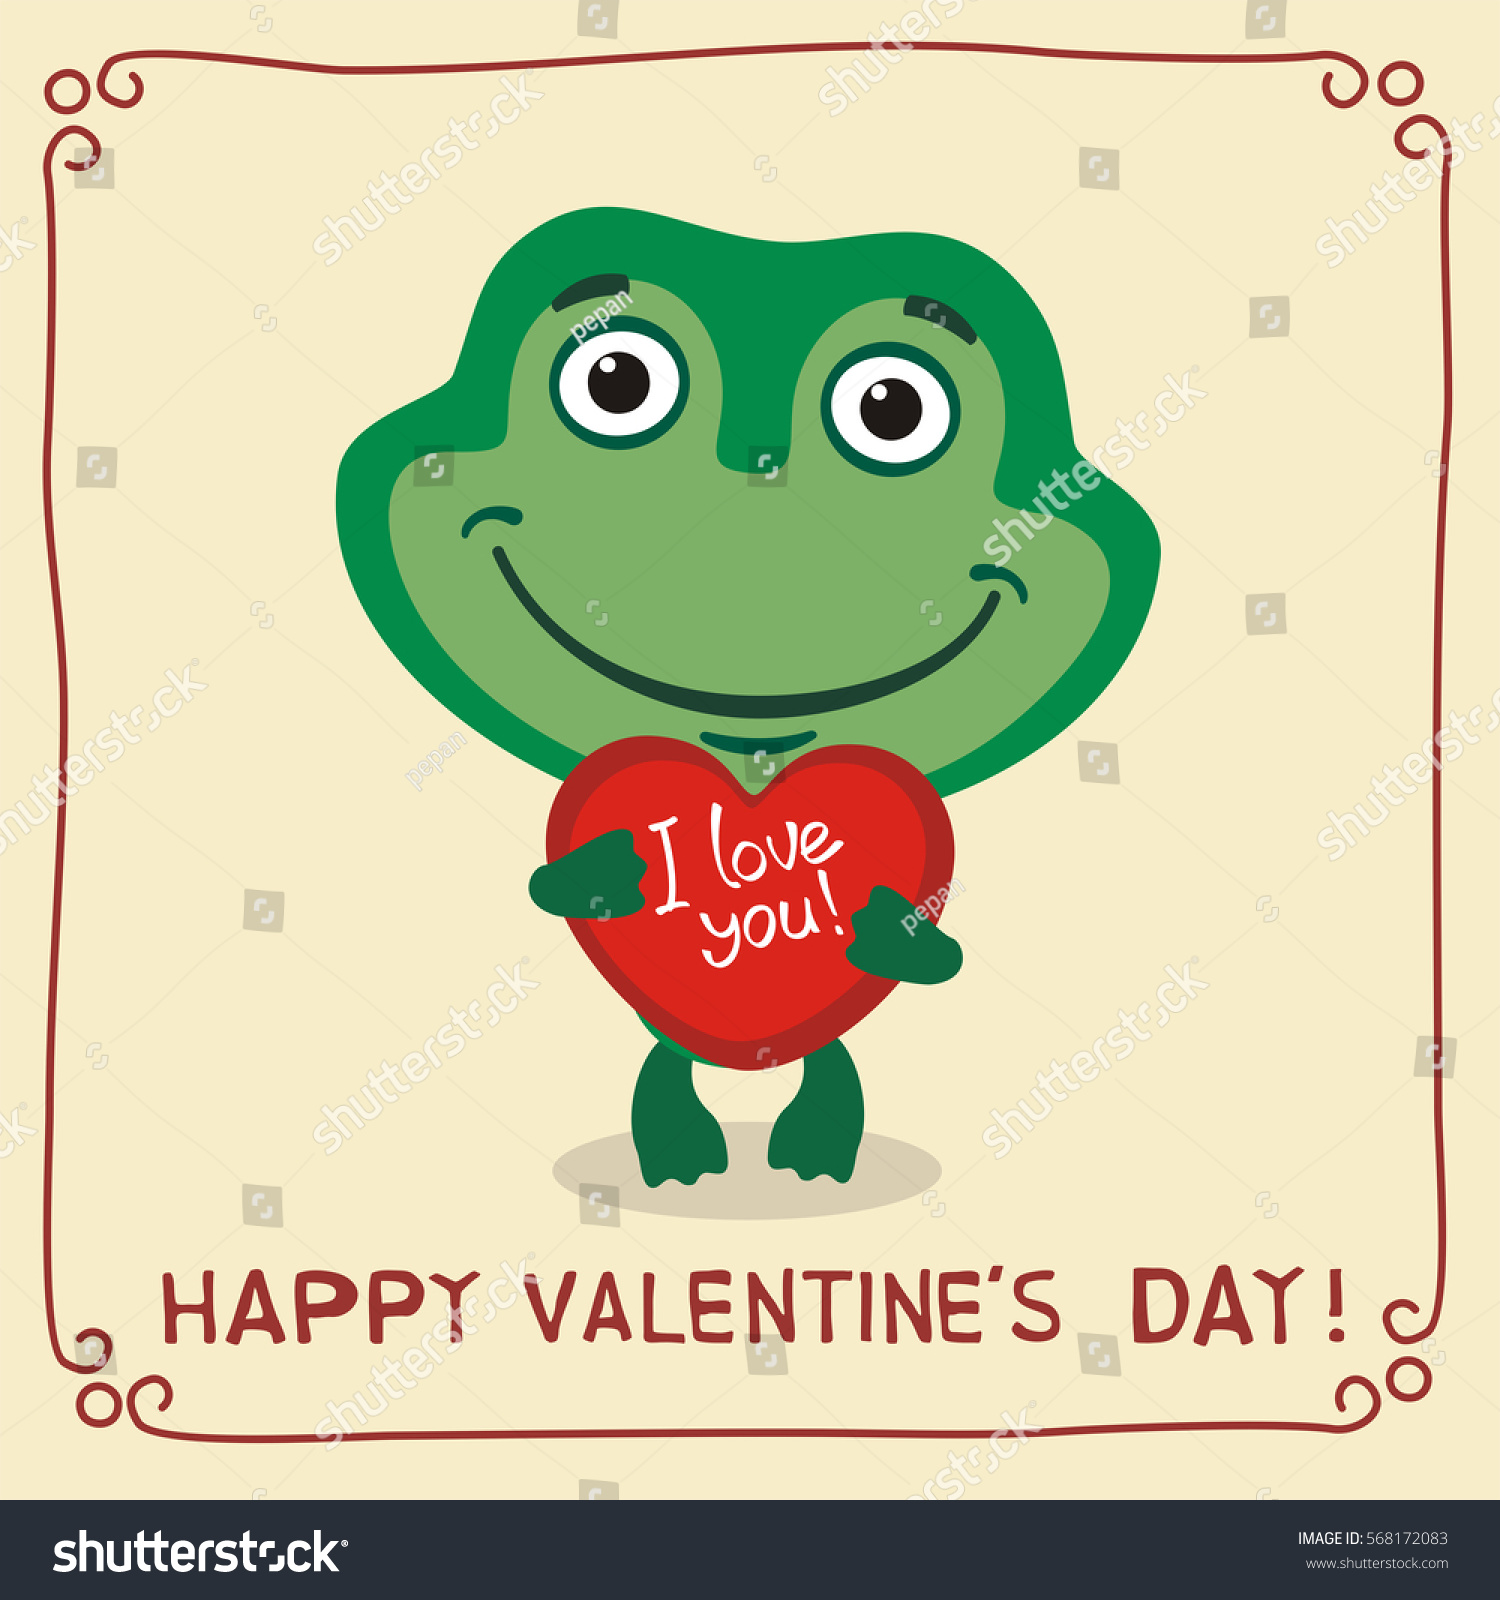 Happy Valentineu0027s Day! I Love You! Funny Frog With Heart In Hands.  Valentines